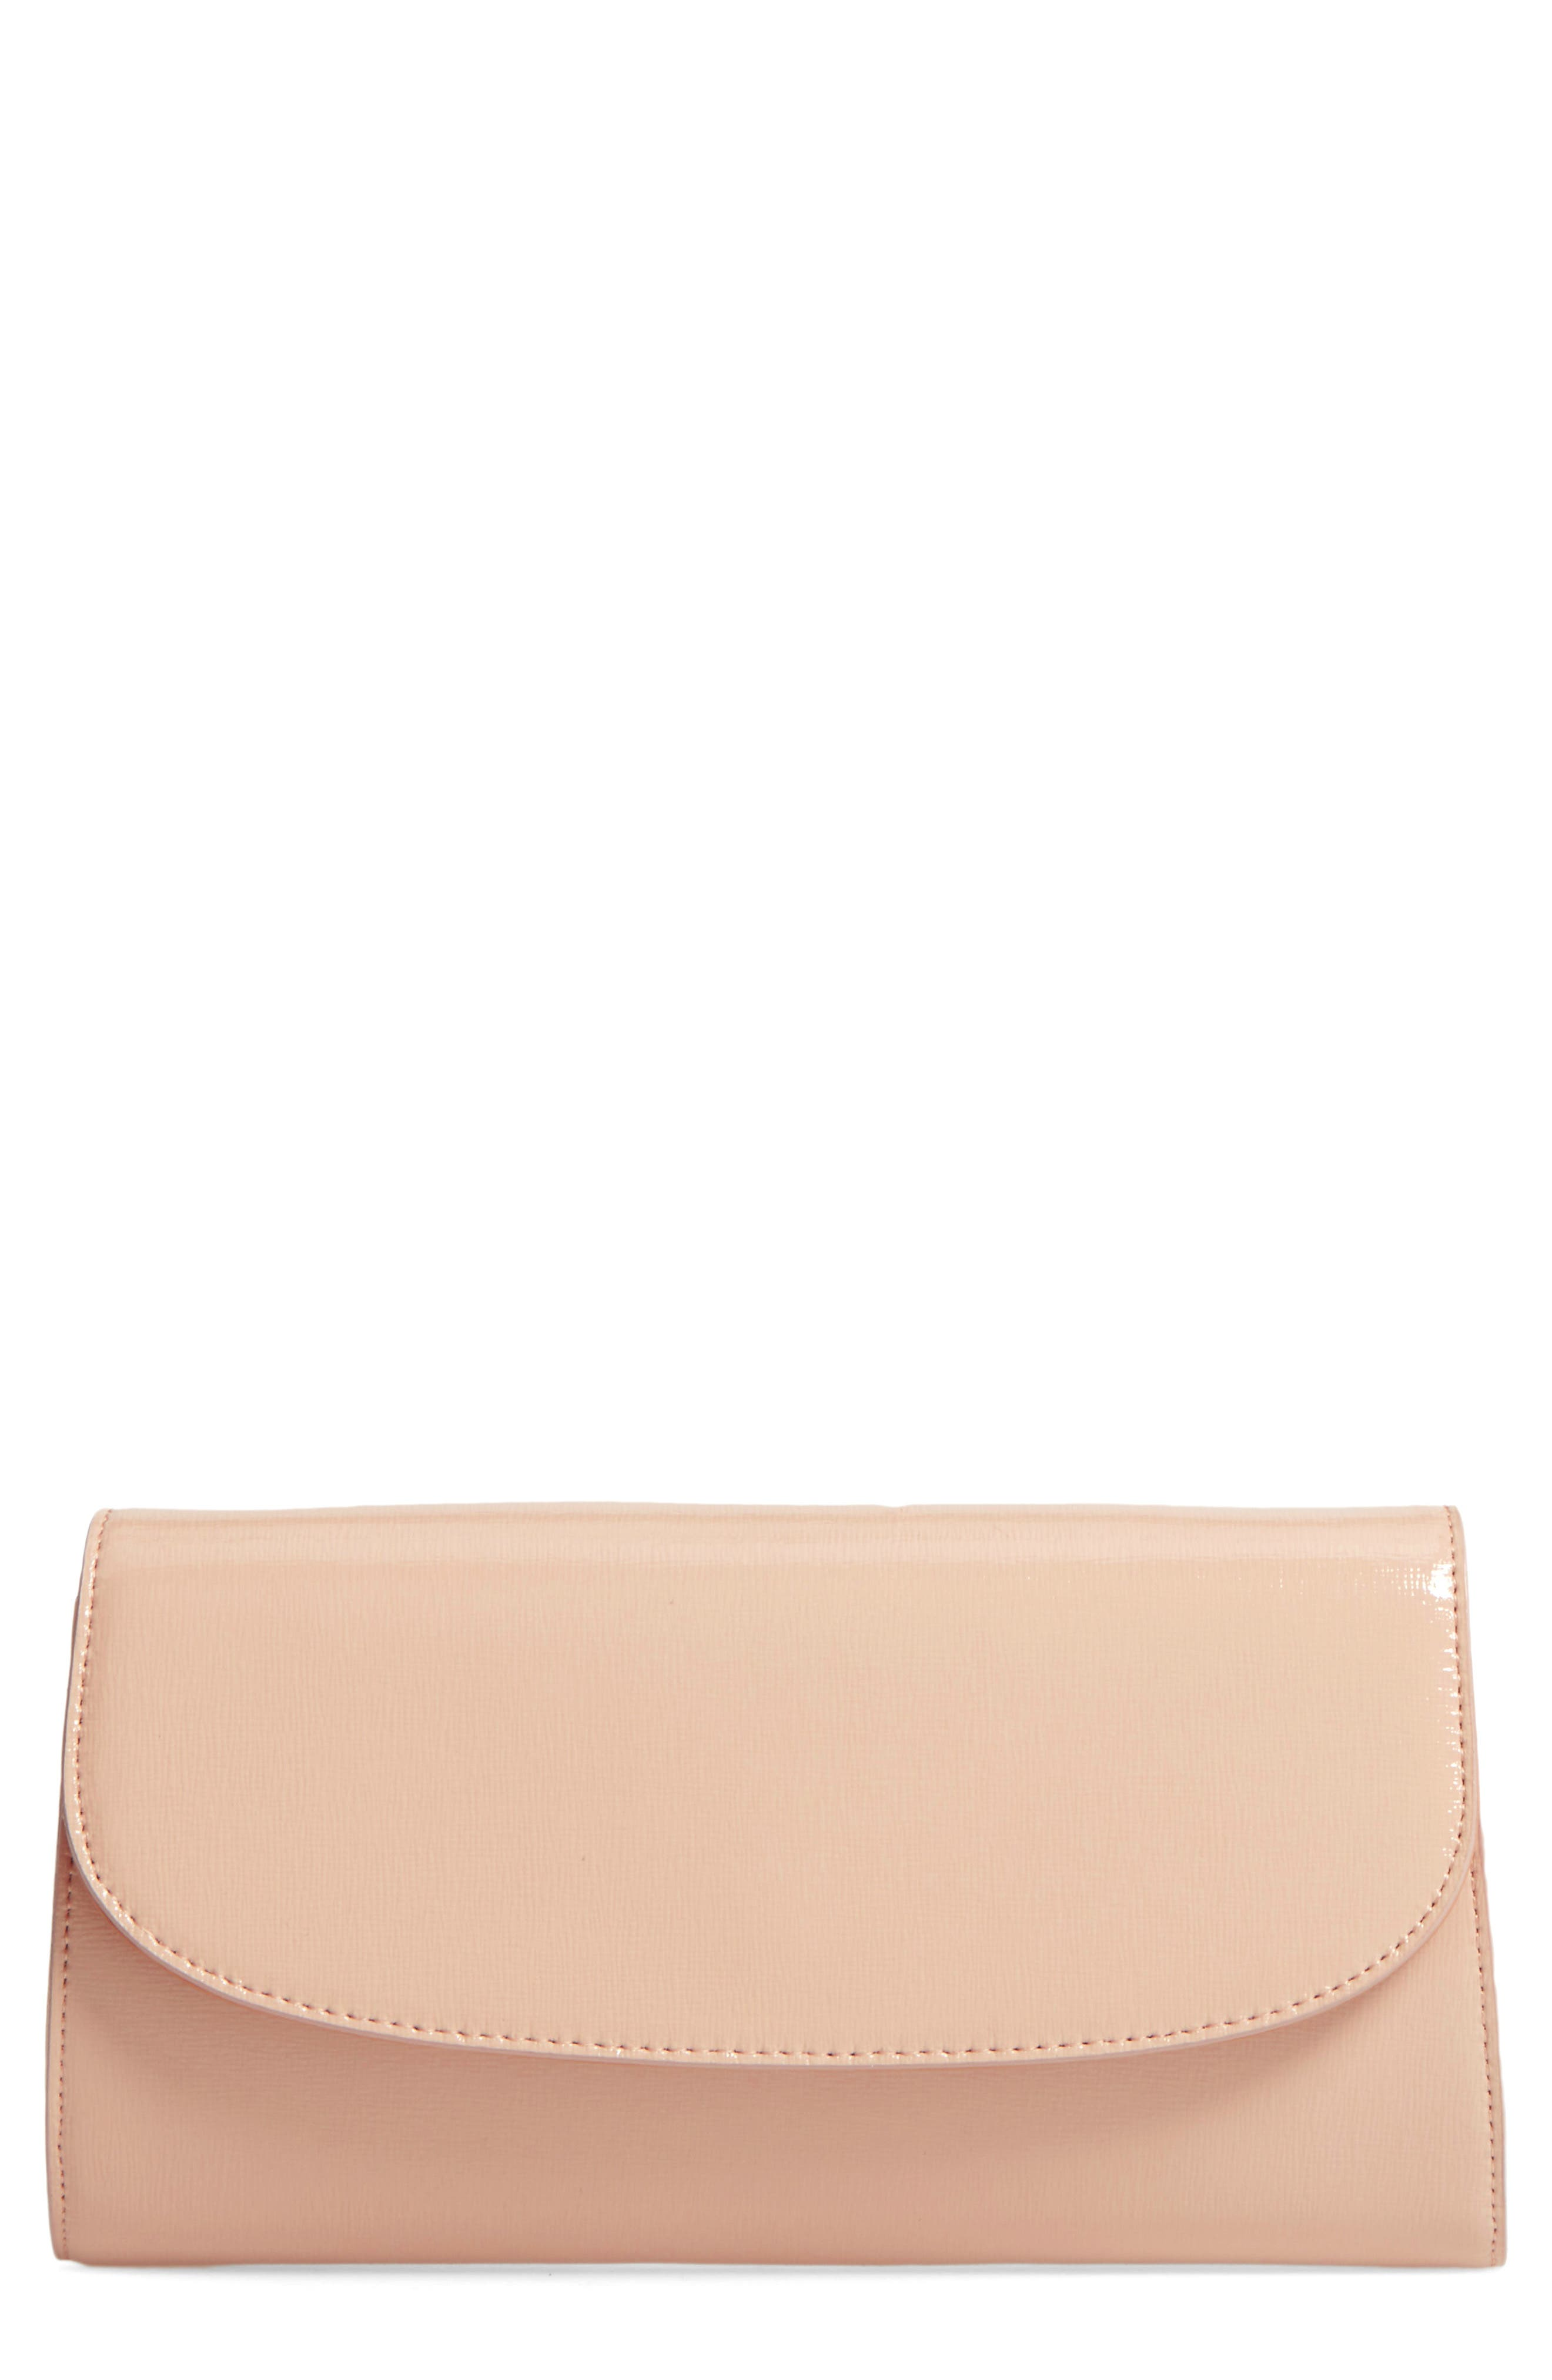 Nordstrom Leather Clutch